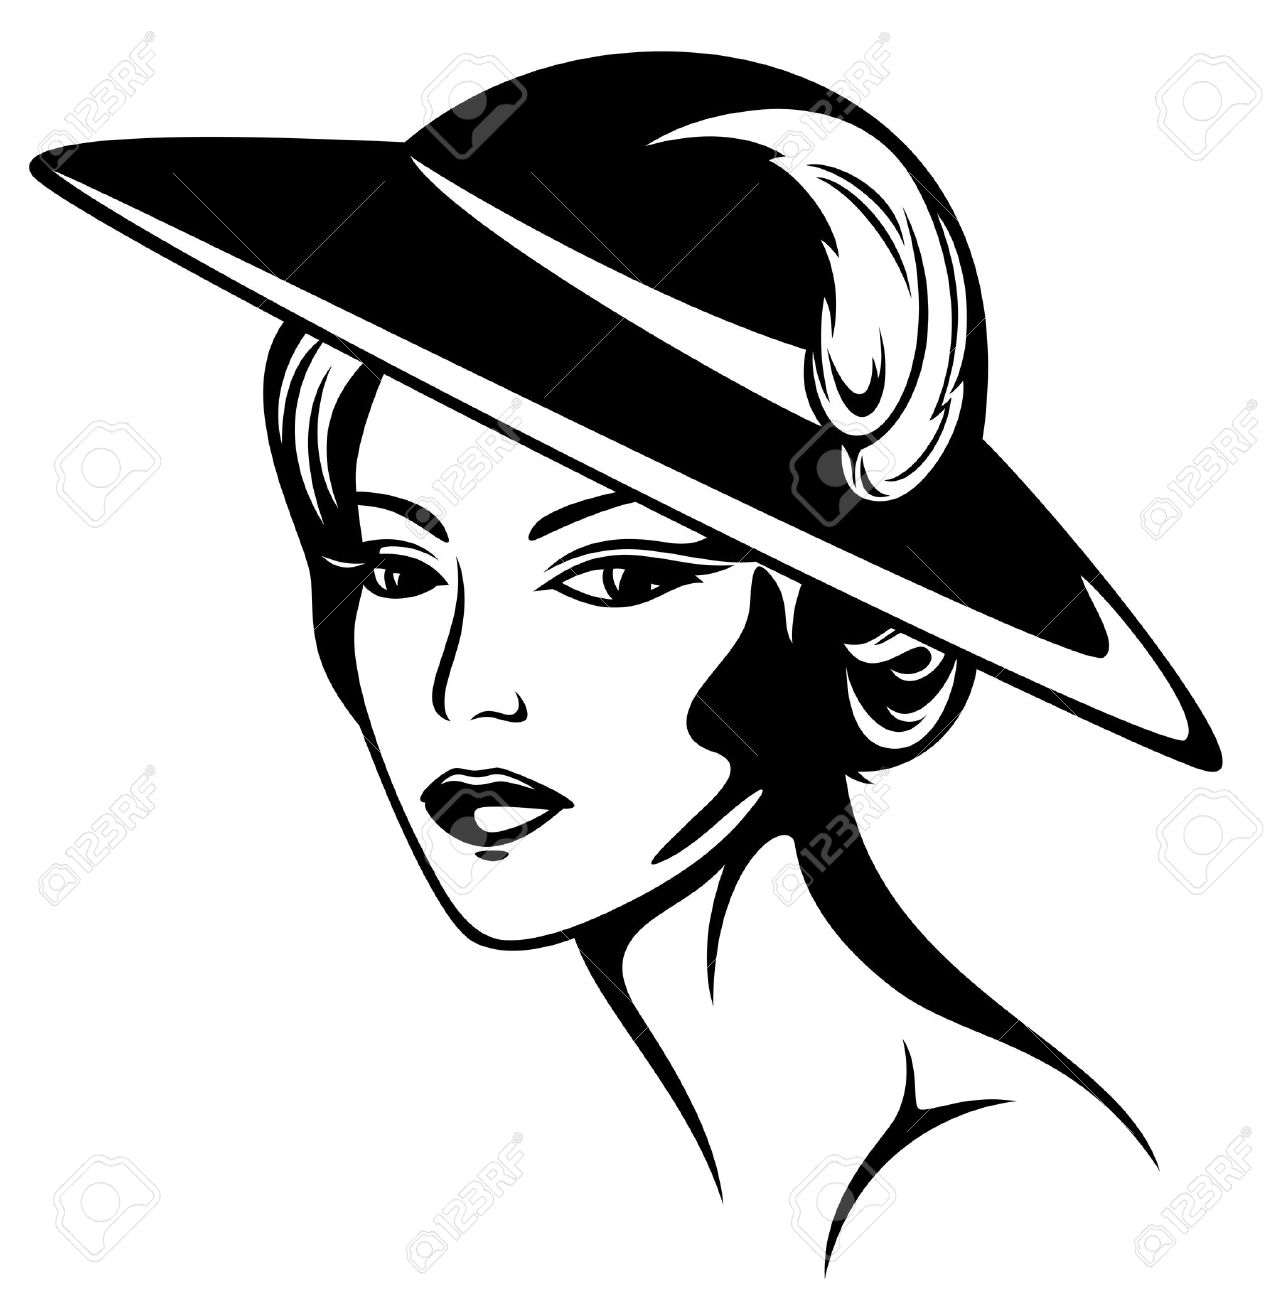 Clipart of girl in hats and scarf black white.